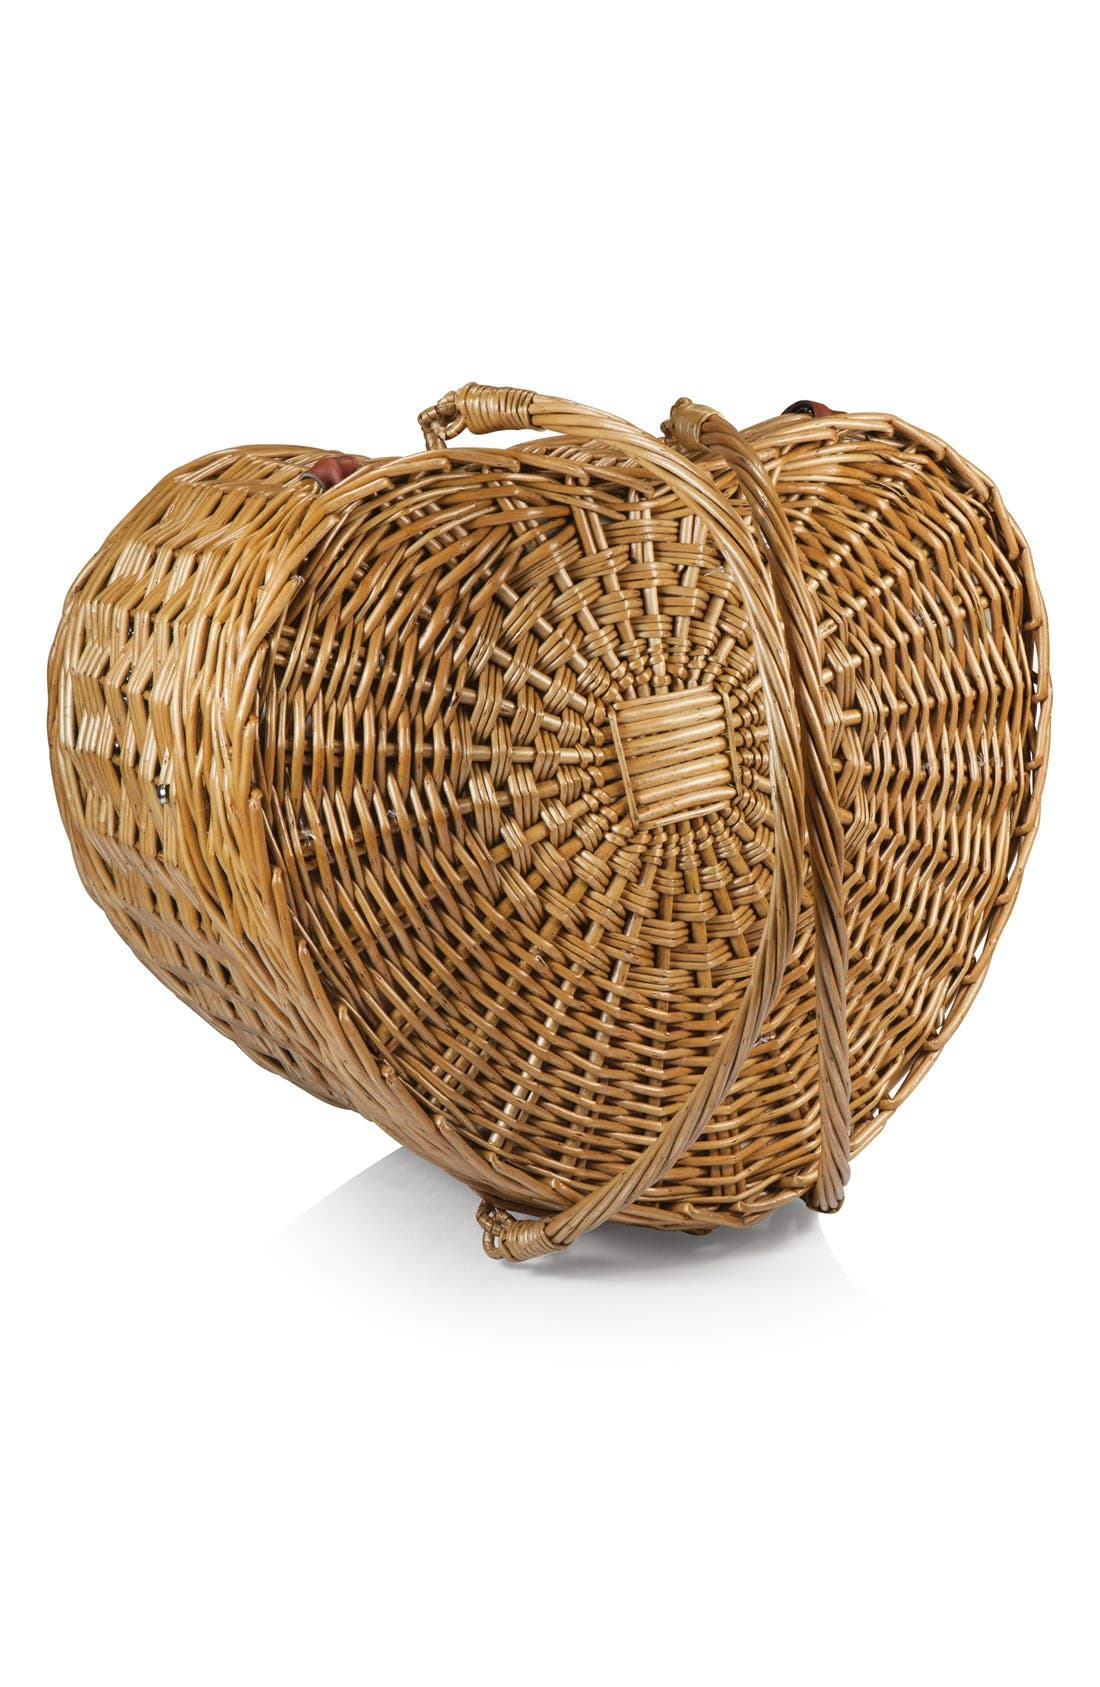 Heart Shaped Wicker Picnic Basket,                             Alternate thumbnail 2, color,                             200